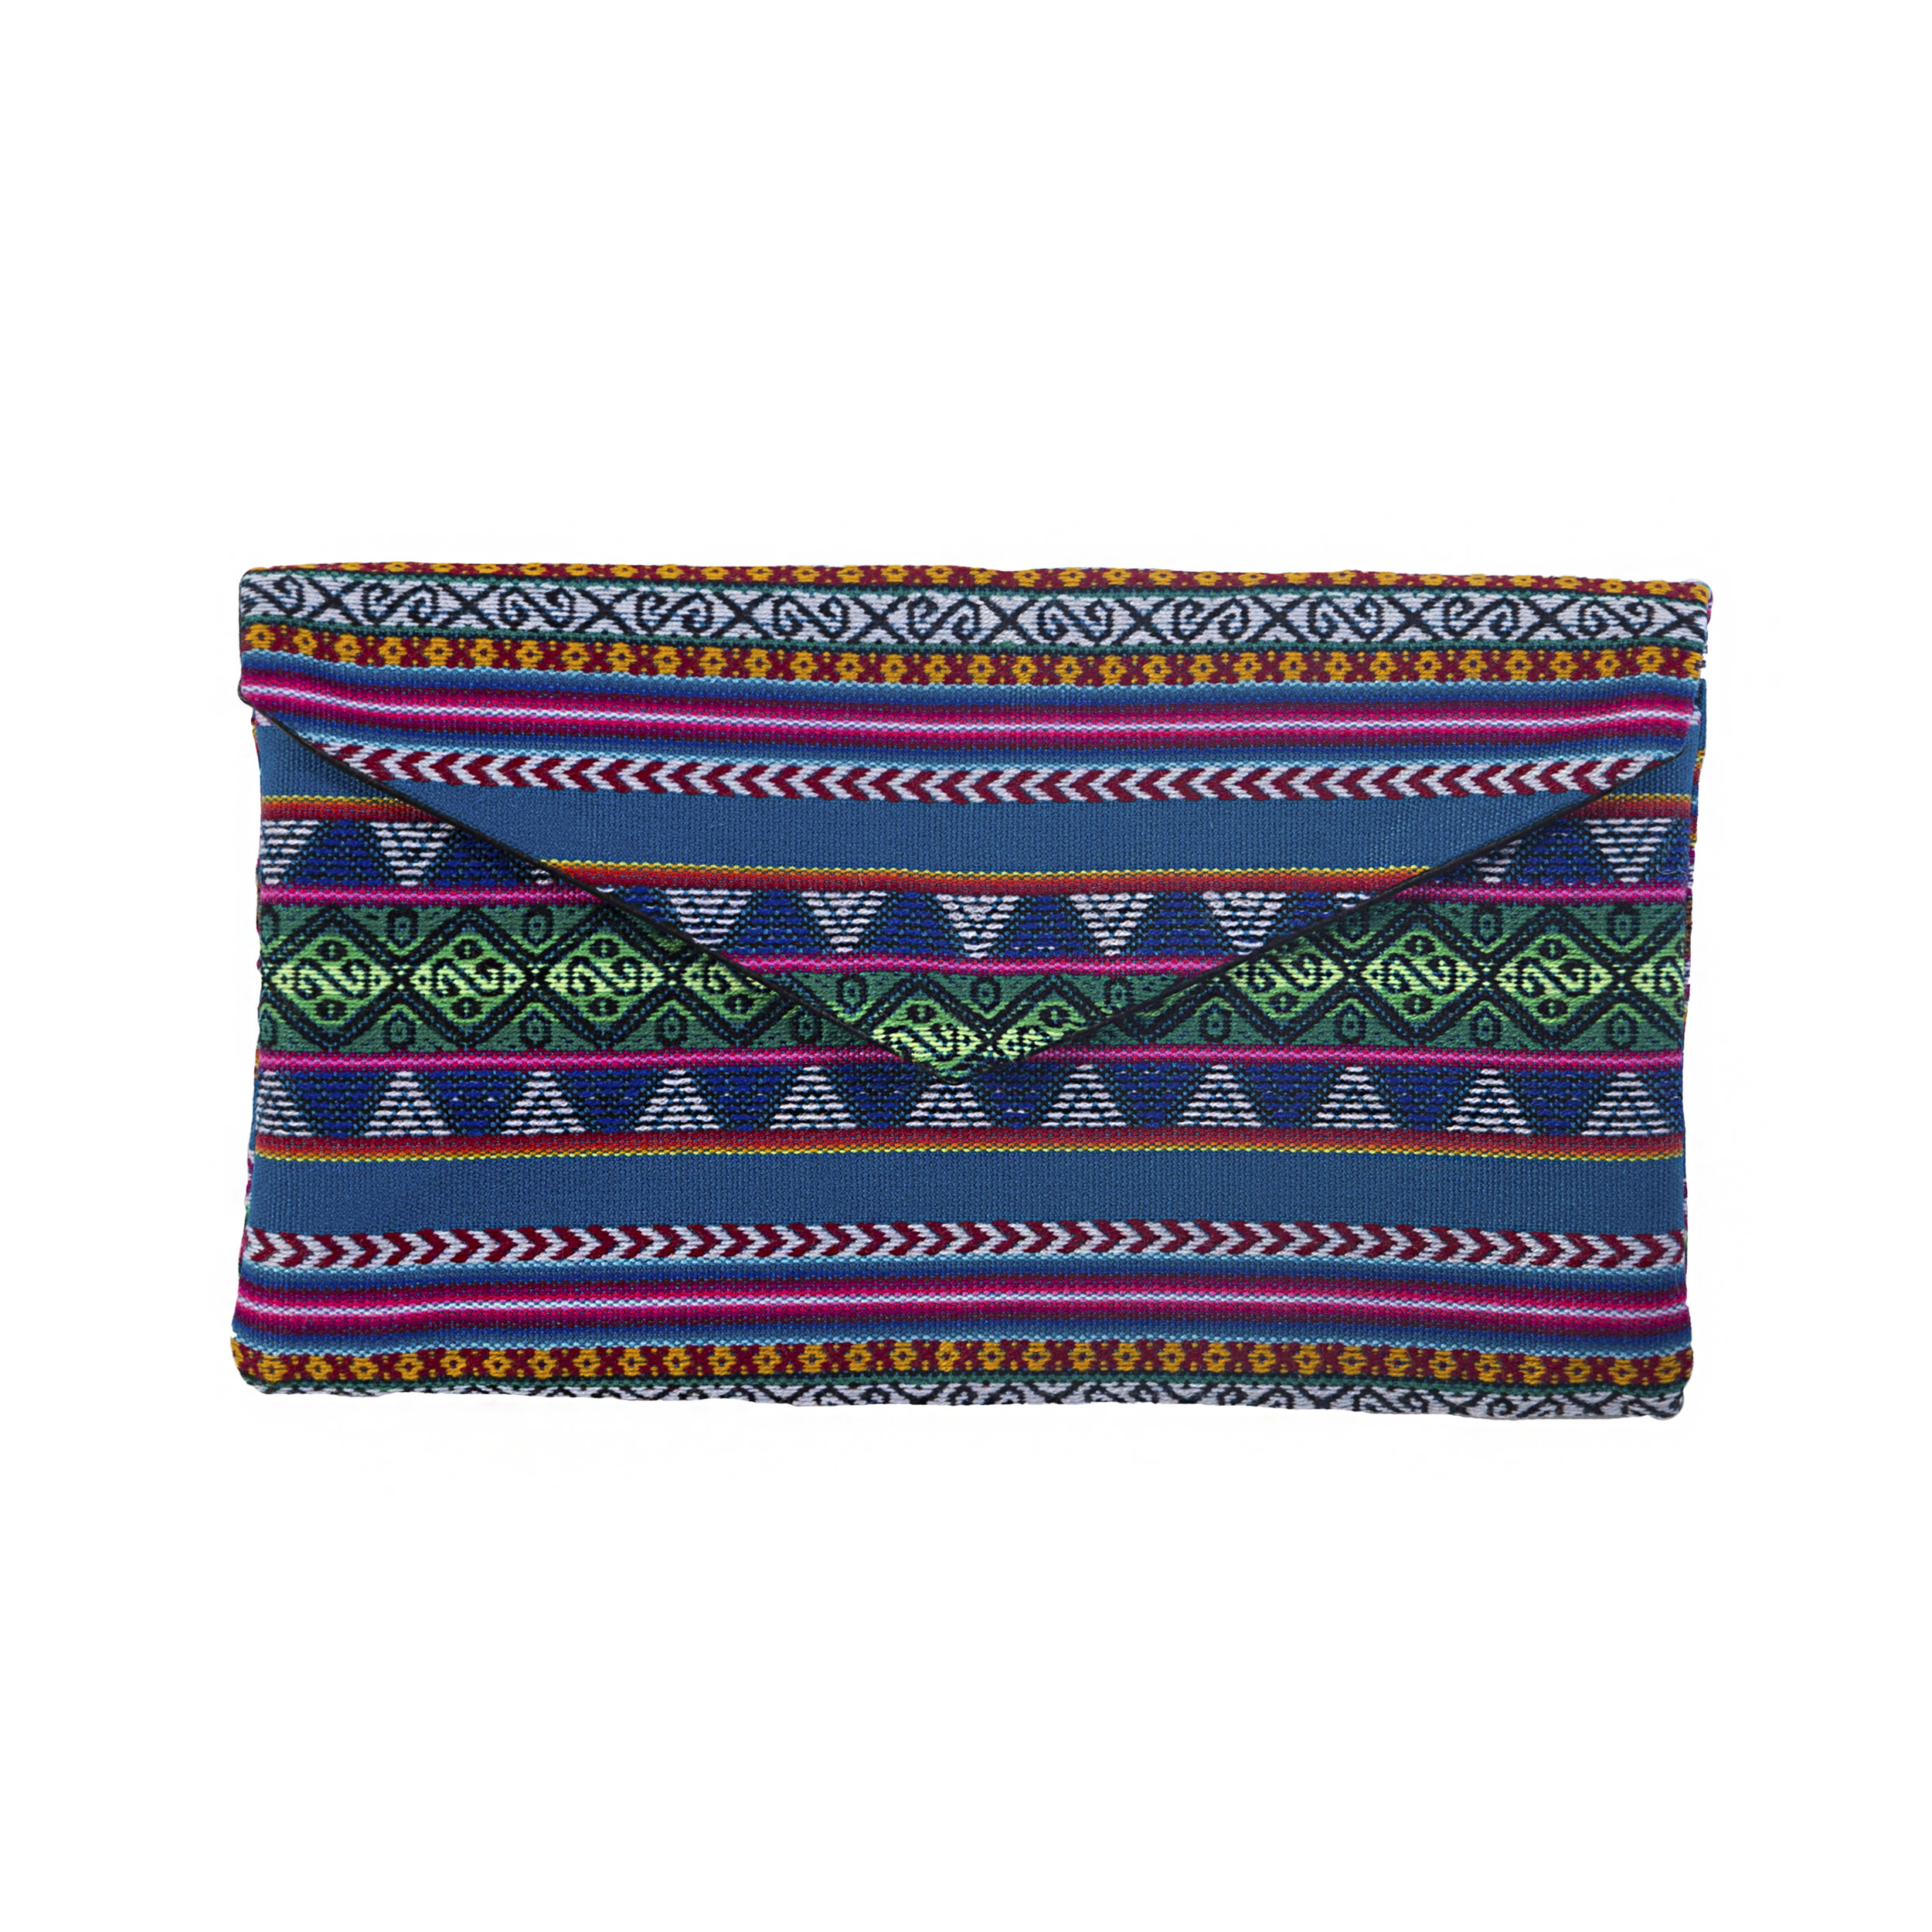 Pochette Cuzco Turquoise  40€ - OUT OF STOCK